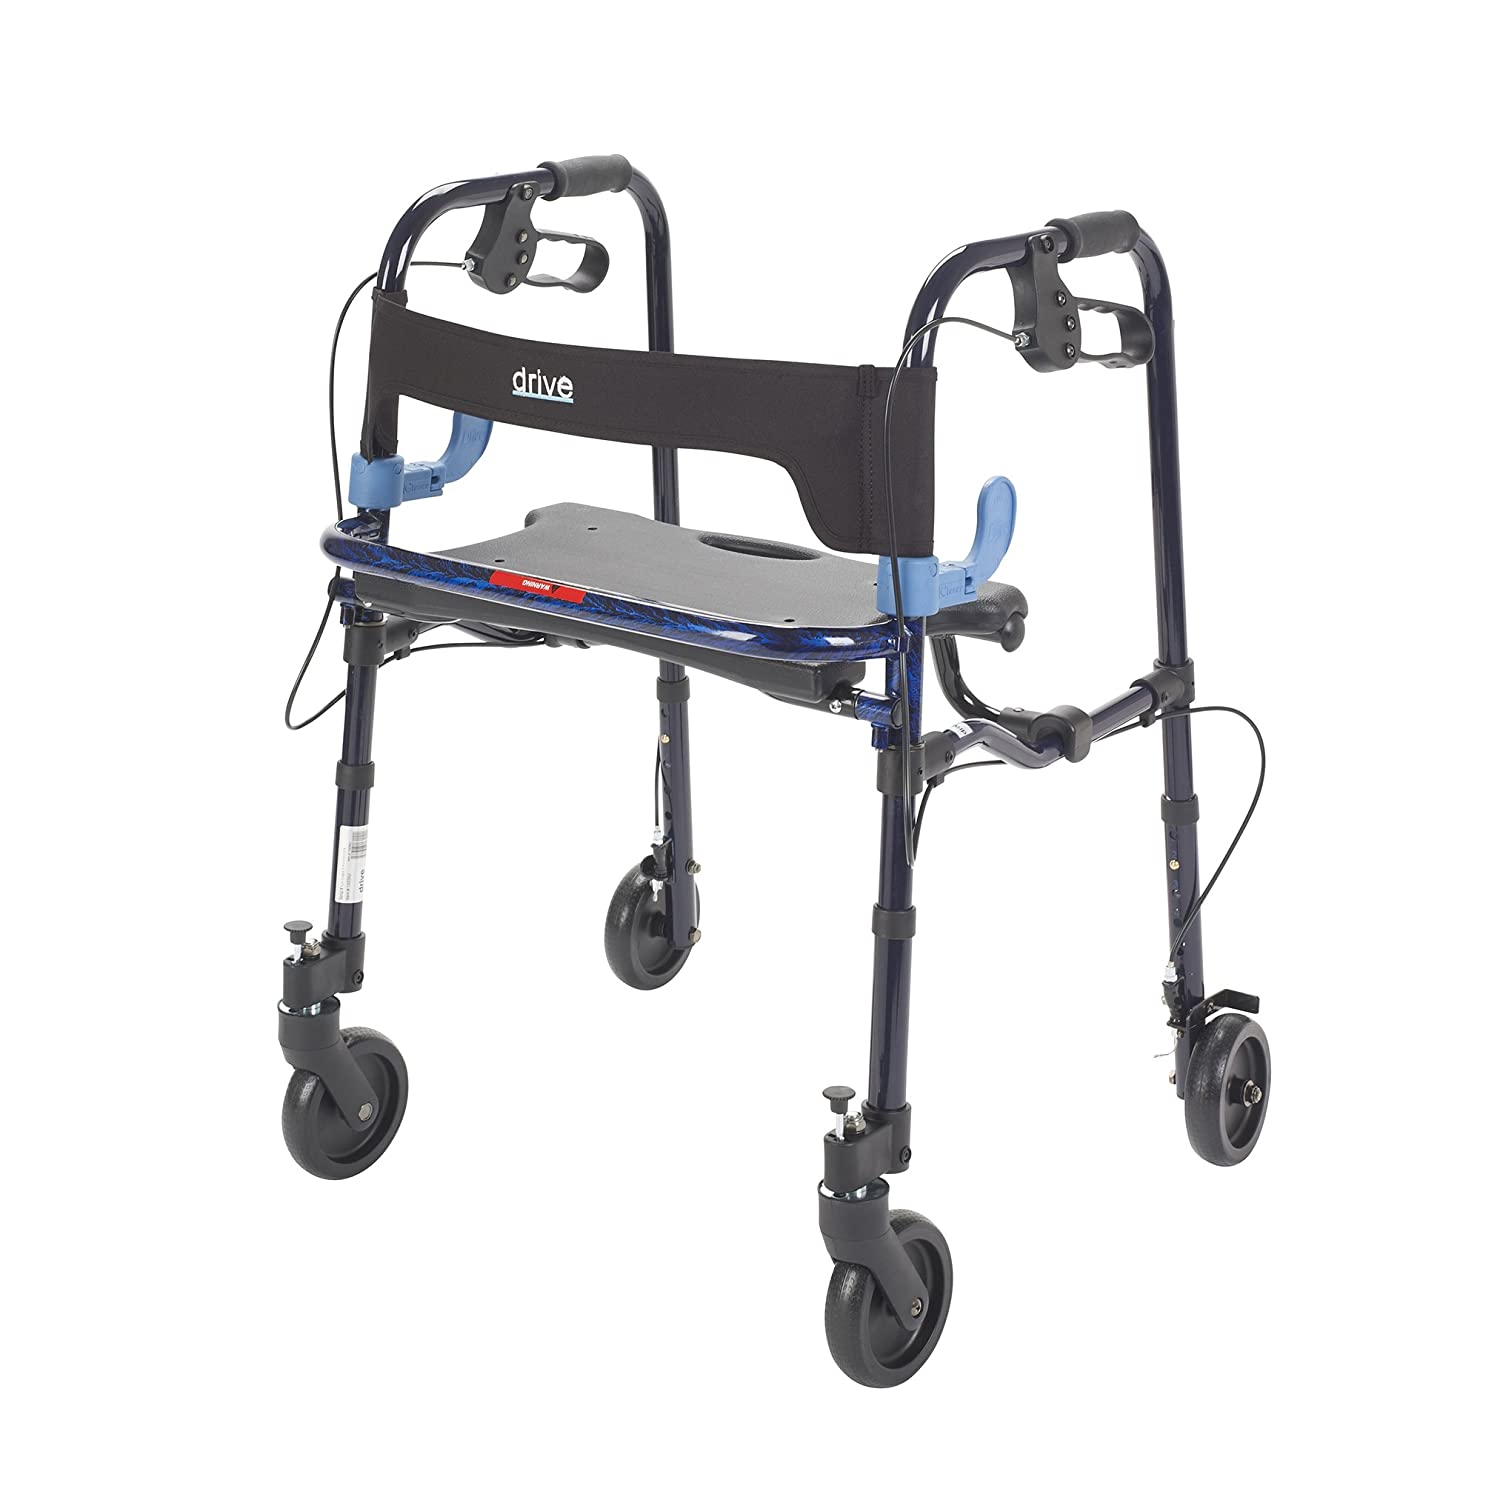 Drive Medical Deluxe Clever Lite Rollator Walker with 5' Casters, Flame Blue, Adult 10230